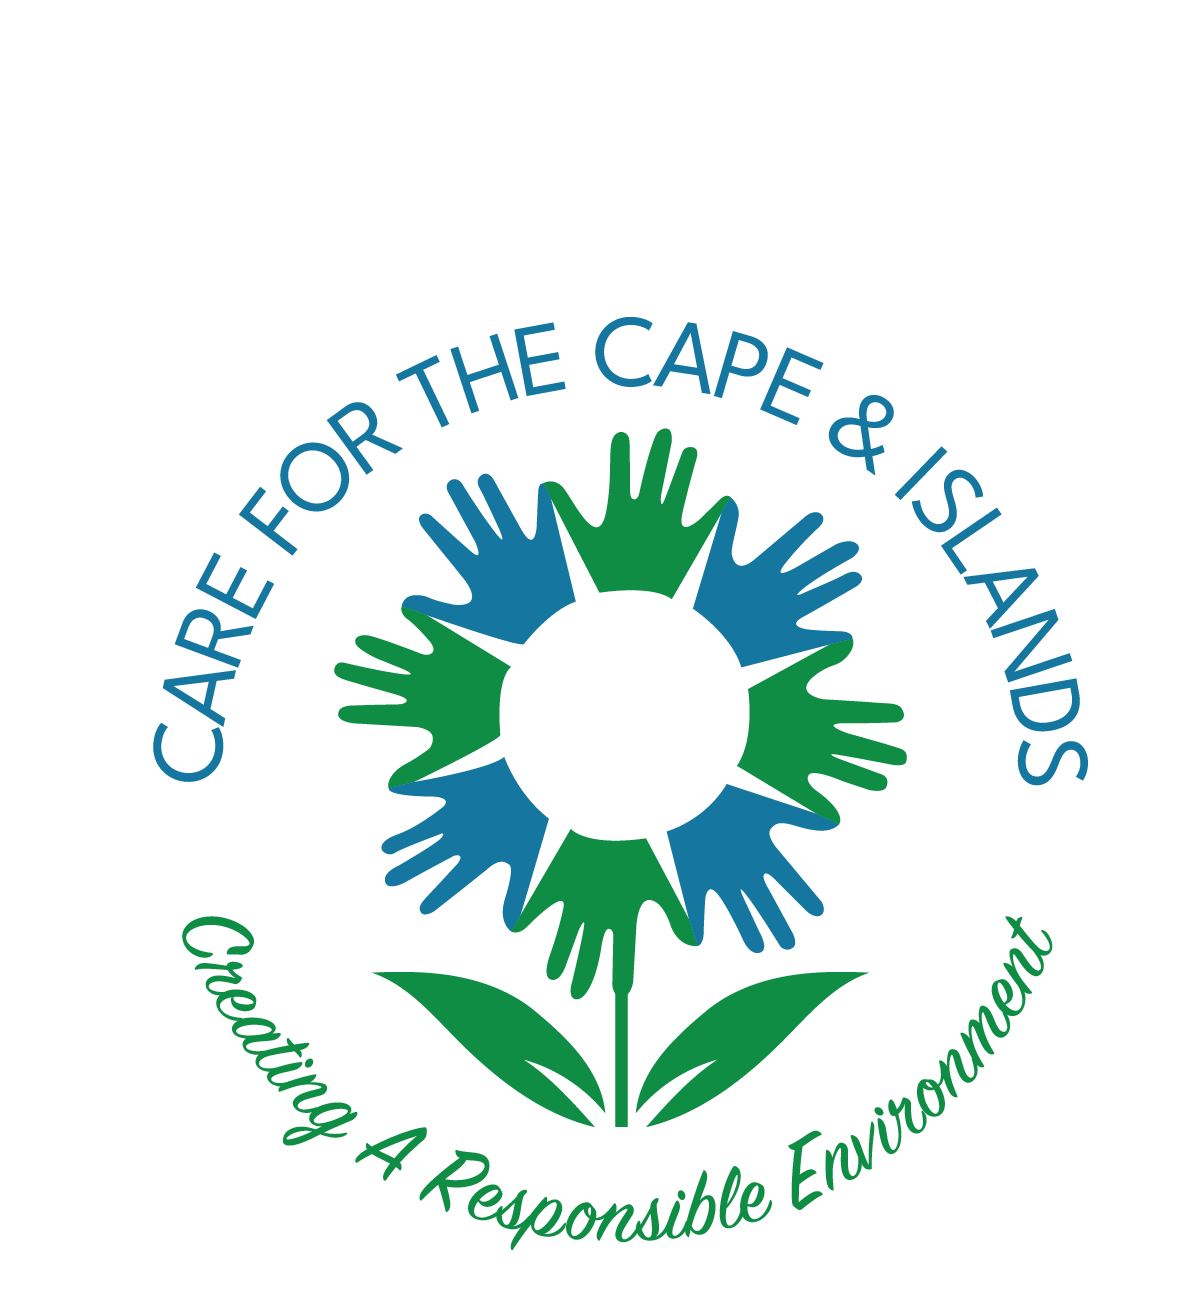 CARE for the Cape and Islands